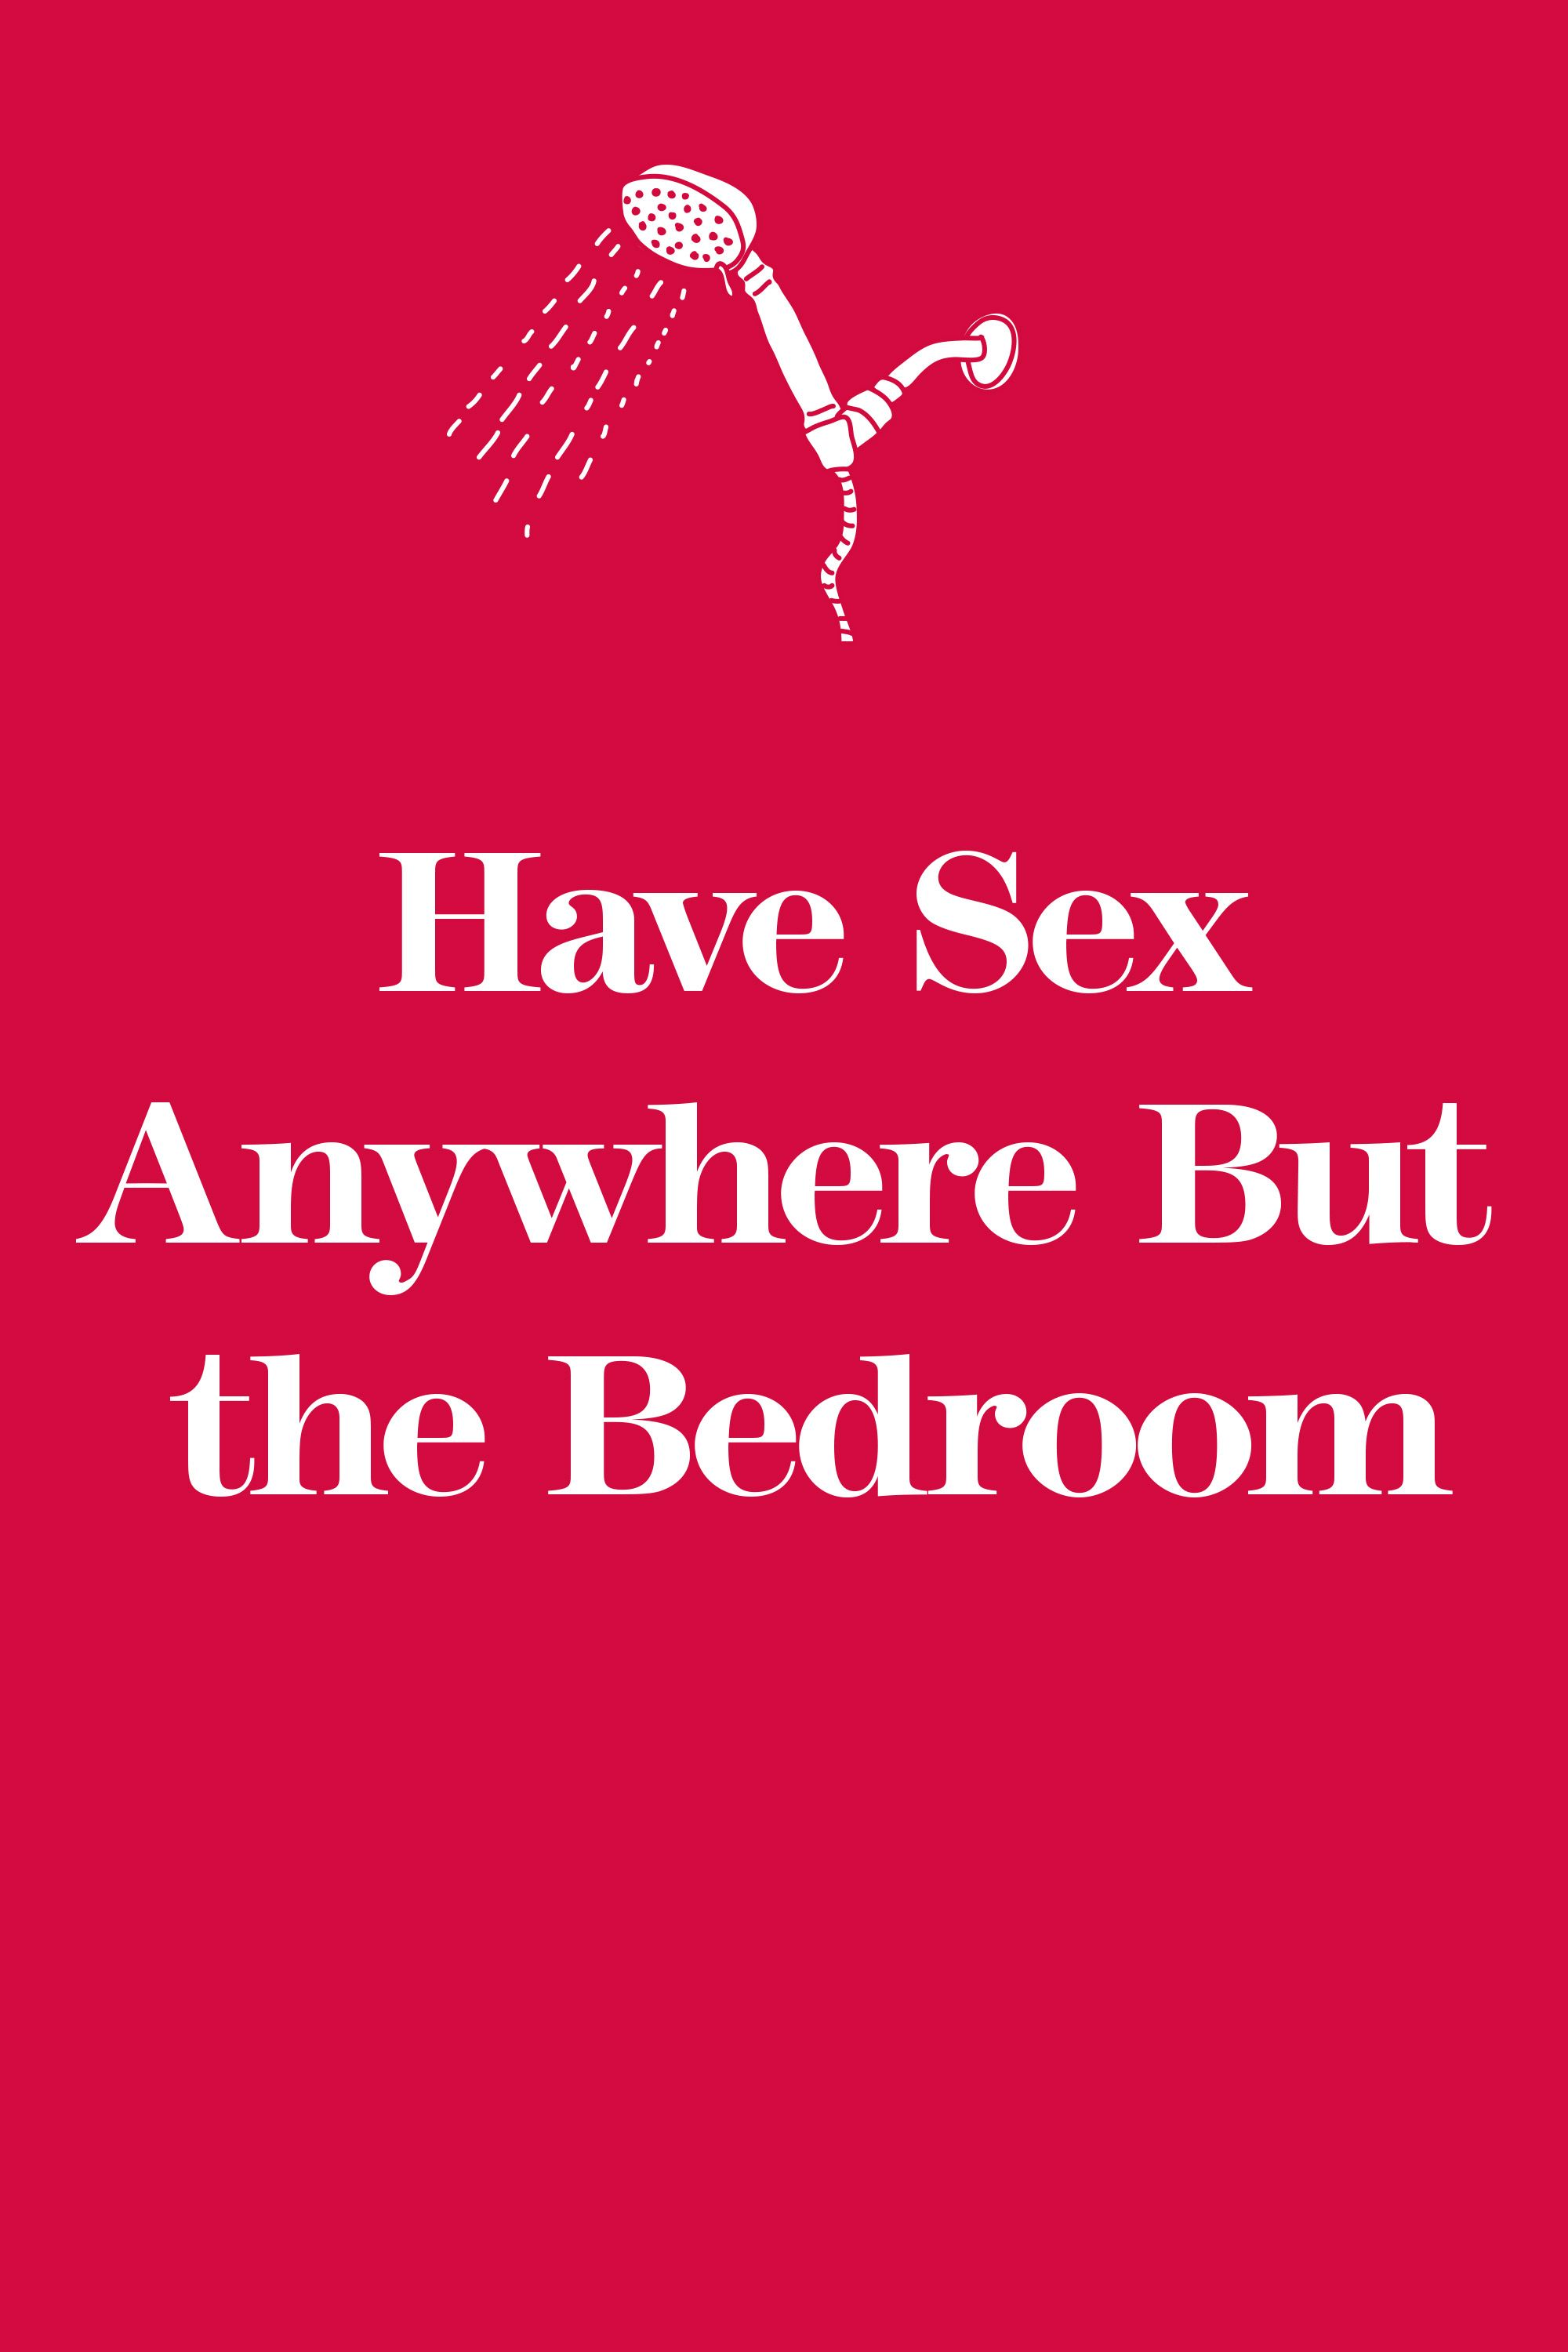 Ideas to spice up sex